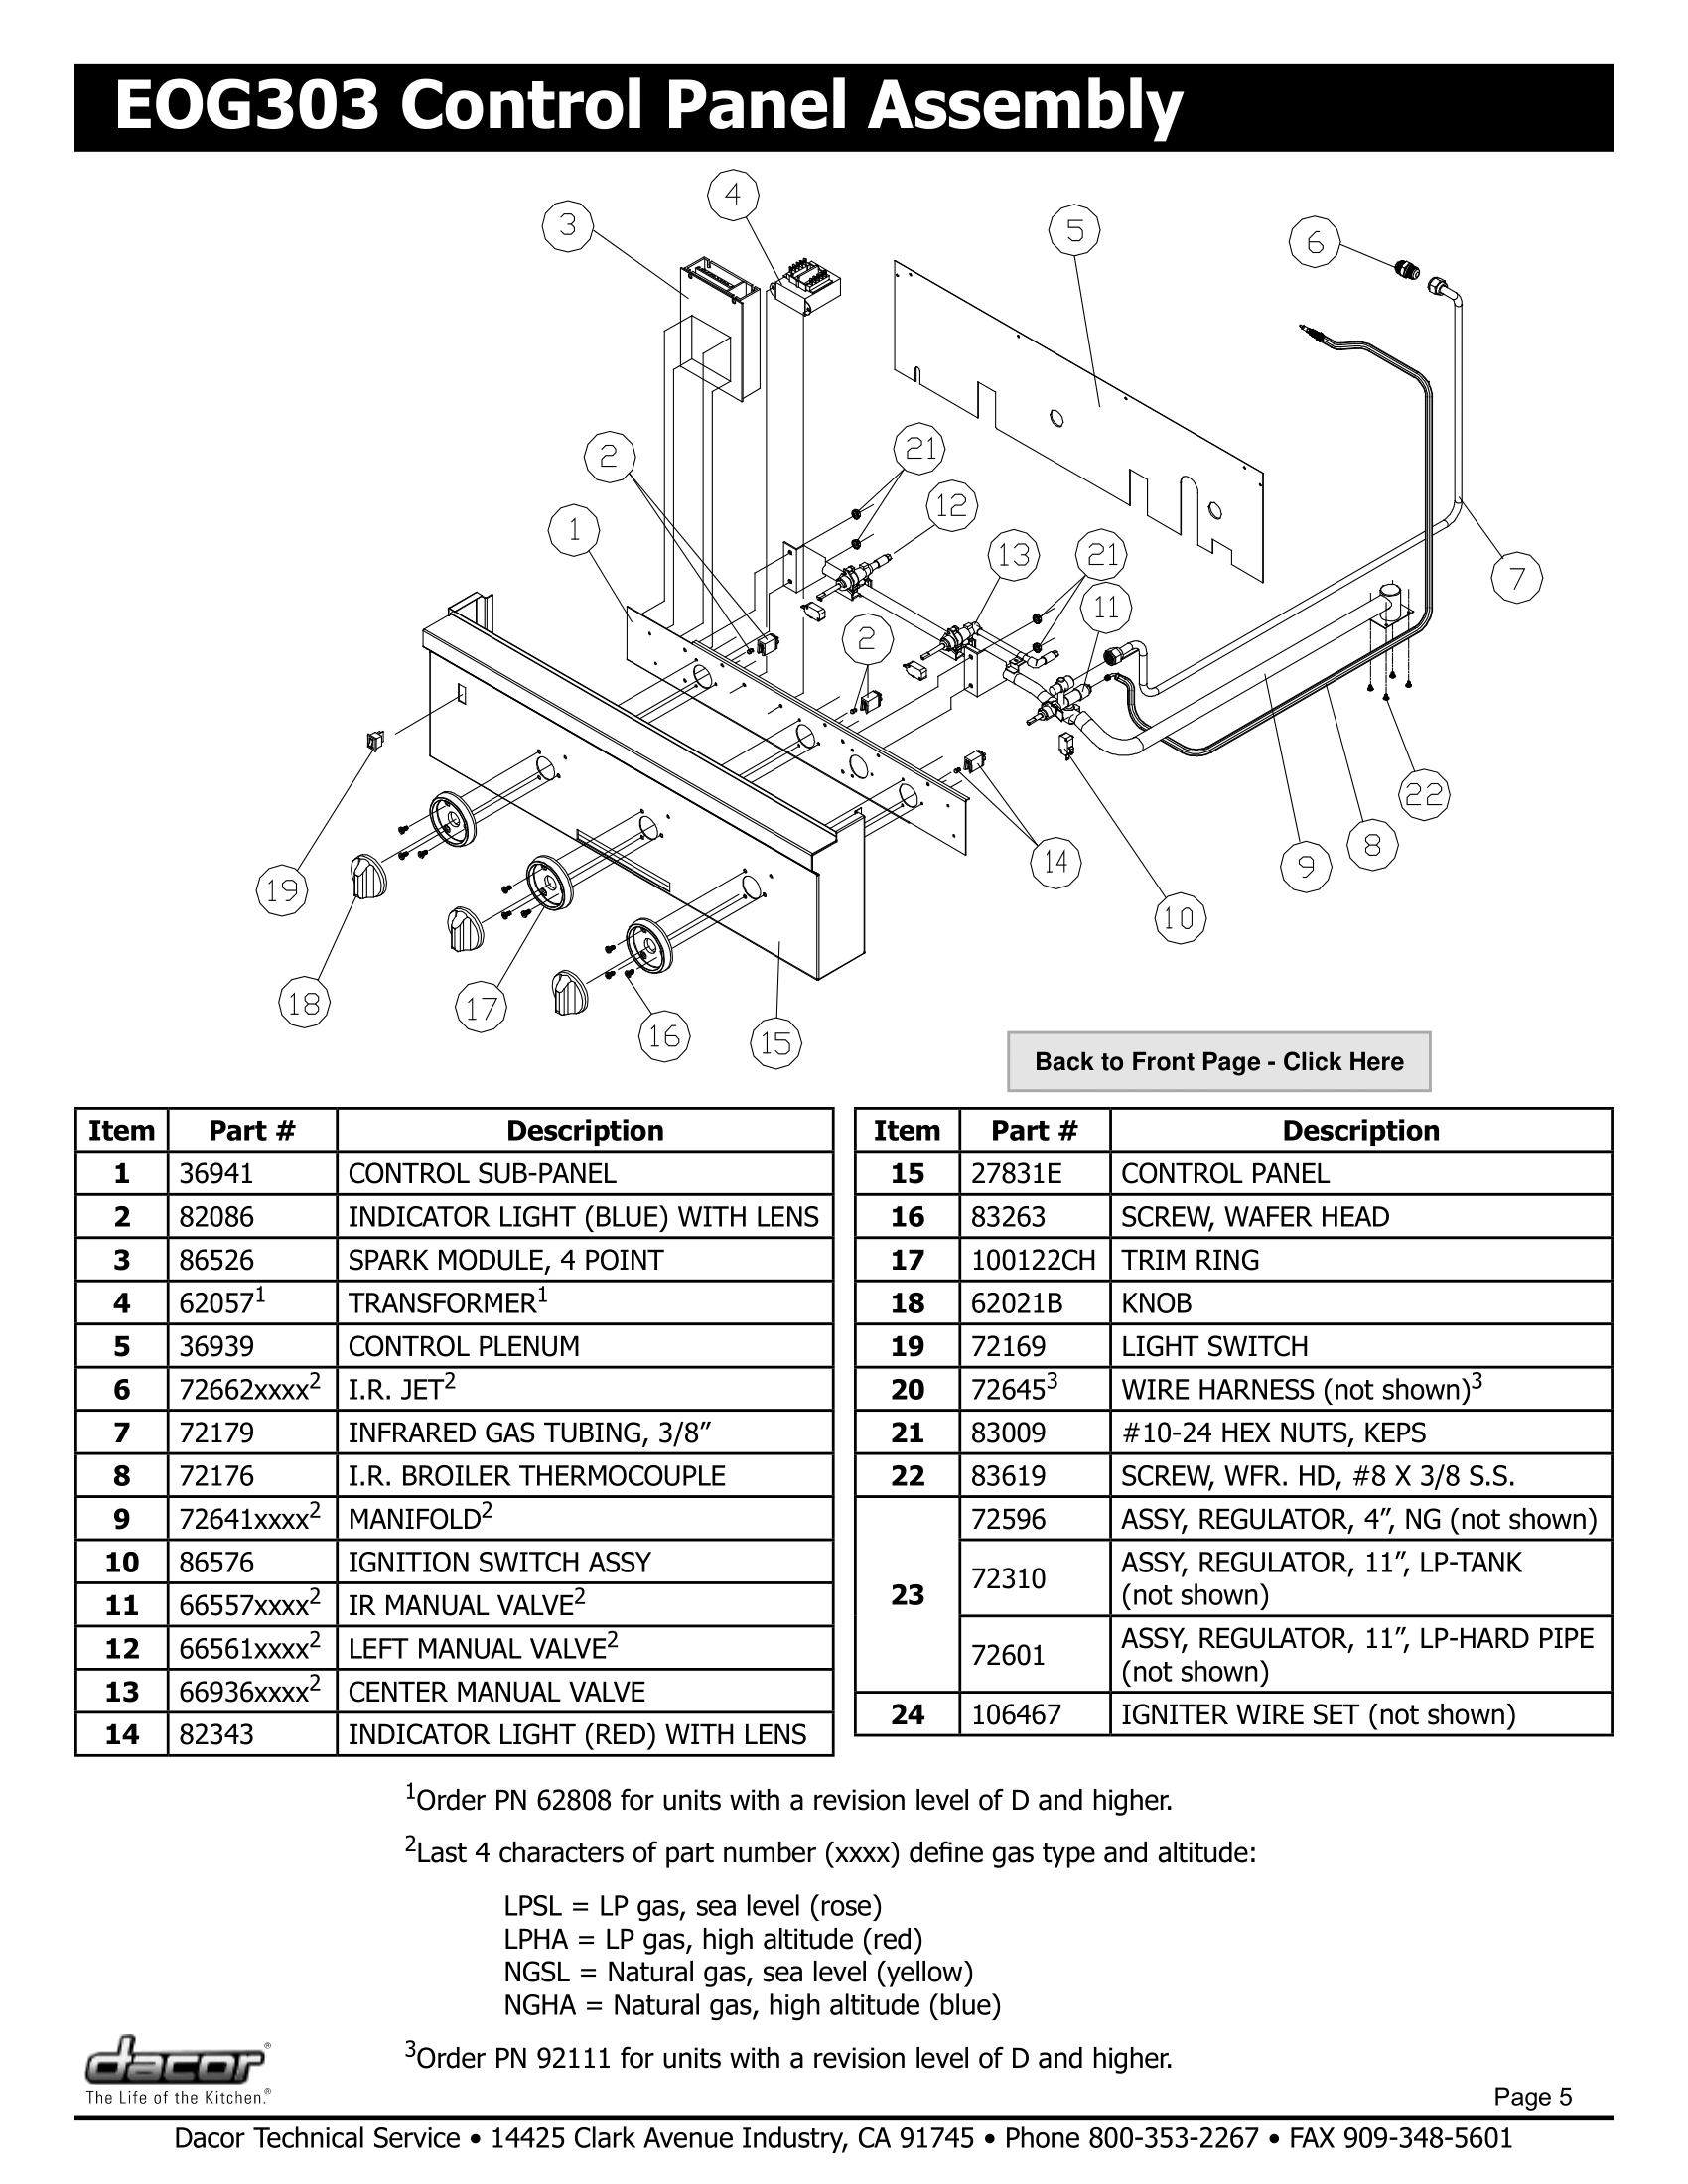 Dacor EOG303 Control Panel Assembly Schematic